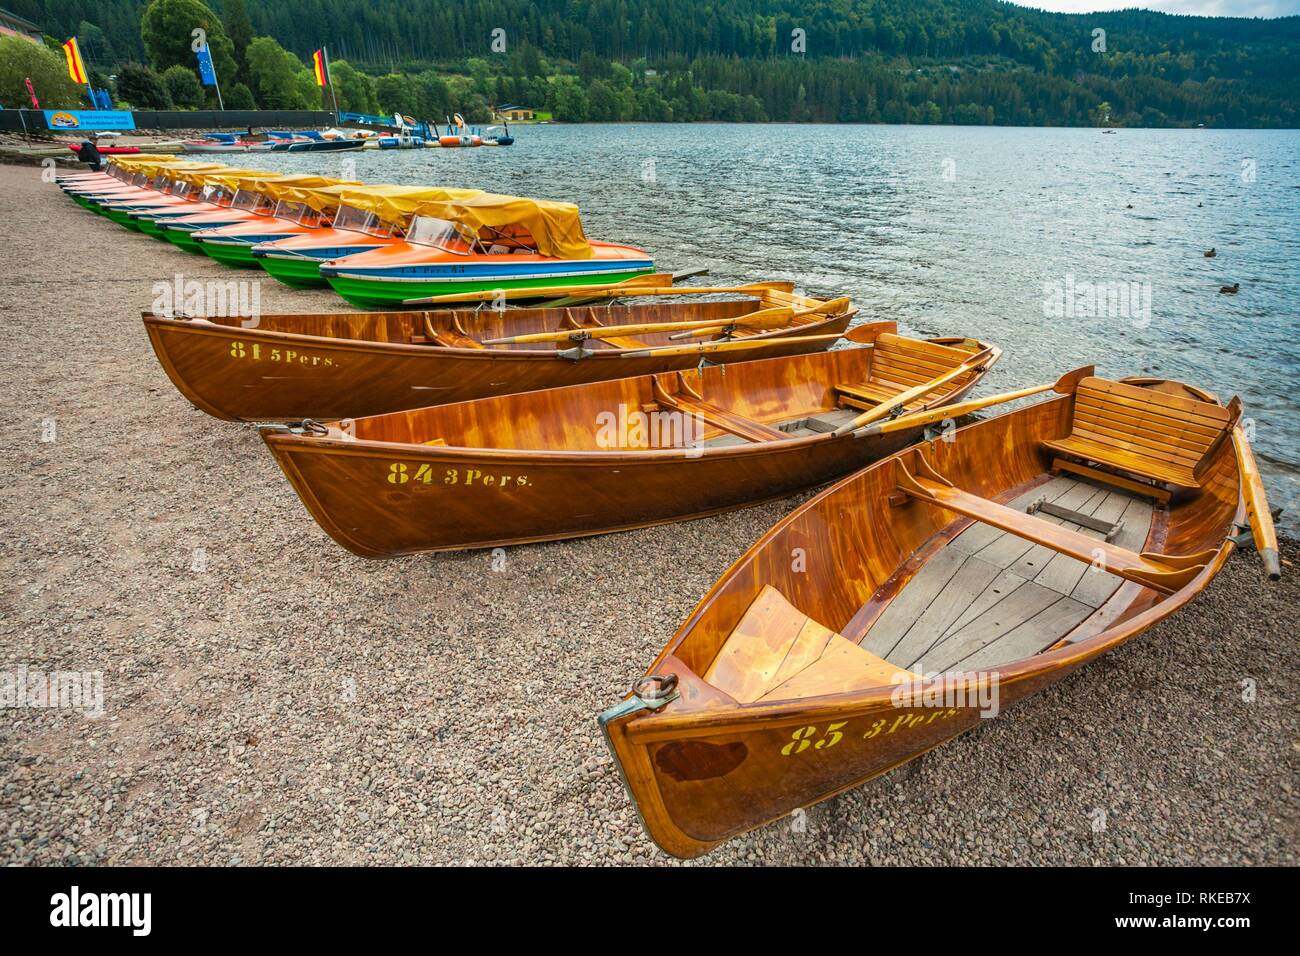 Barche a remi.lago Titisee. Titisee. Titisee-Neustadt. Foresta Nera. Baden Wurttemberg. Germania. Europa Immagini Stock